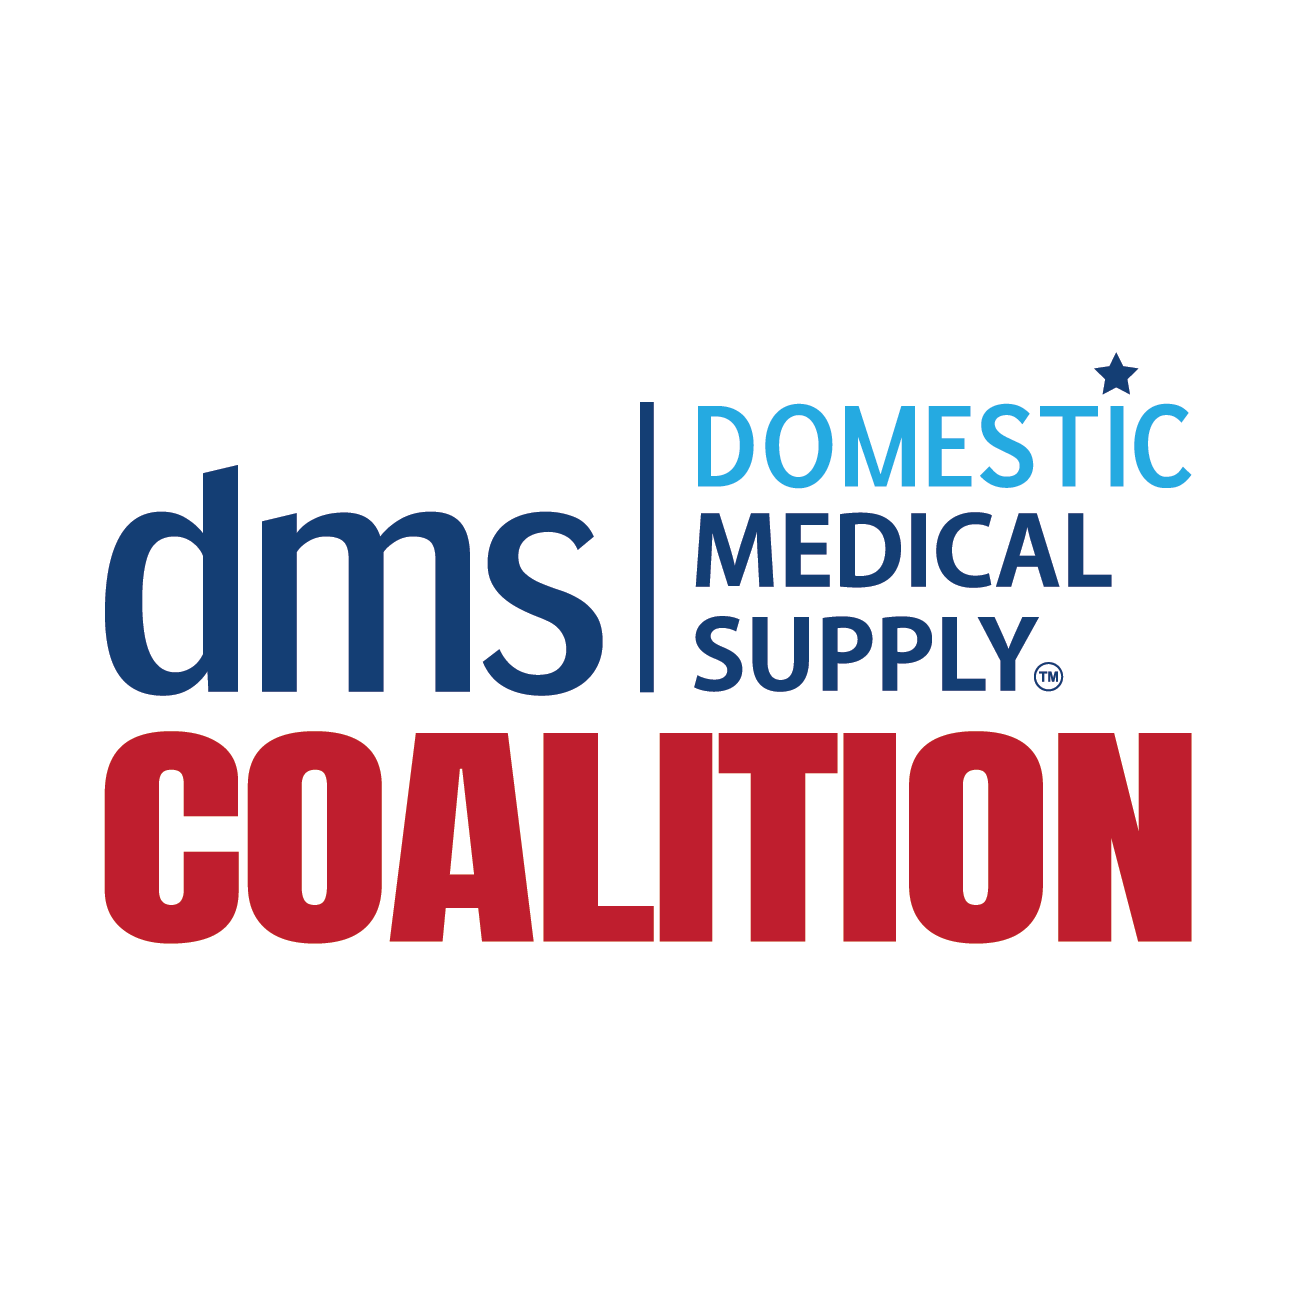 Domestic Medical Supply Coalition Announces Jamie Brack as Design and Creative Director for the DMS Brand